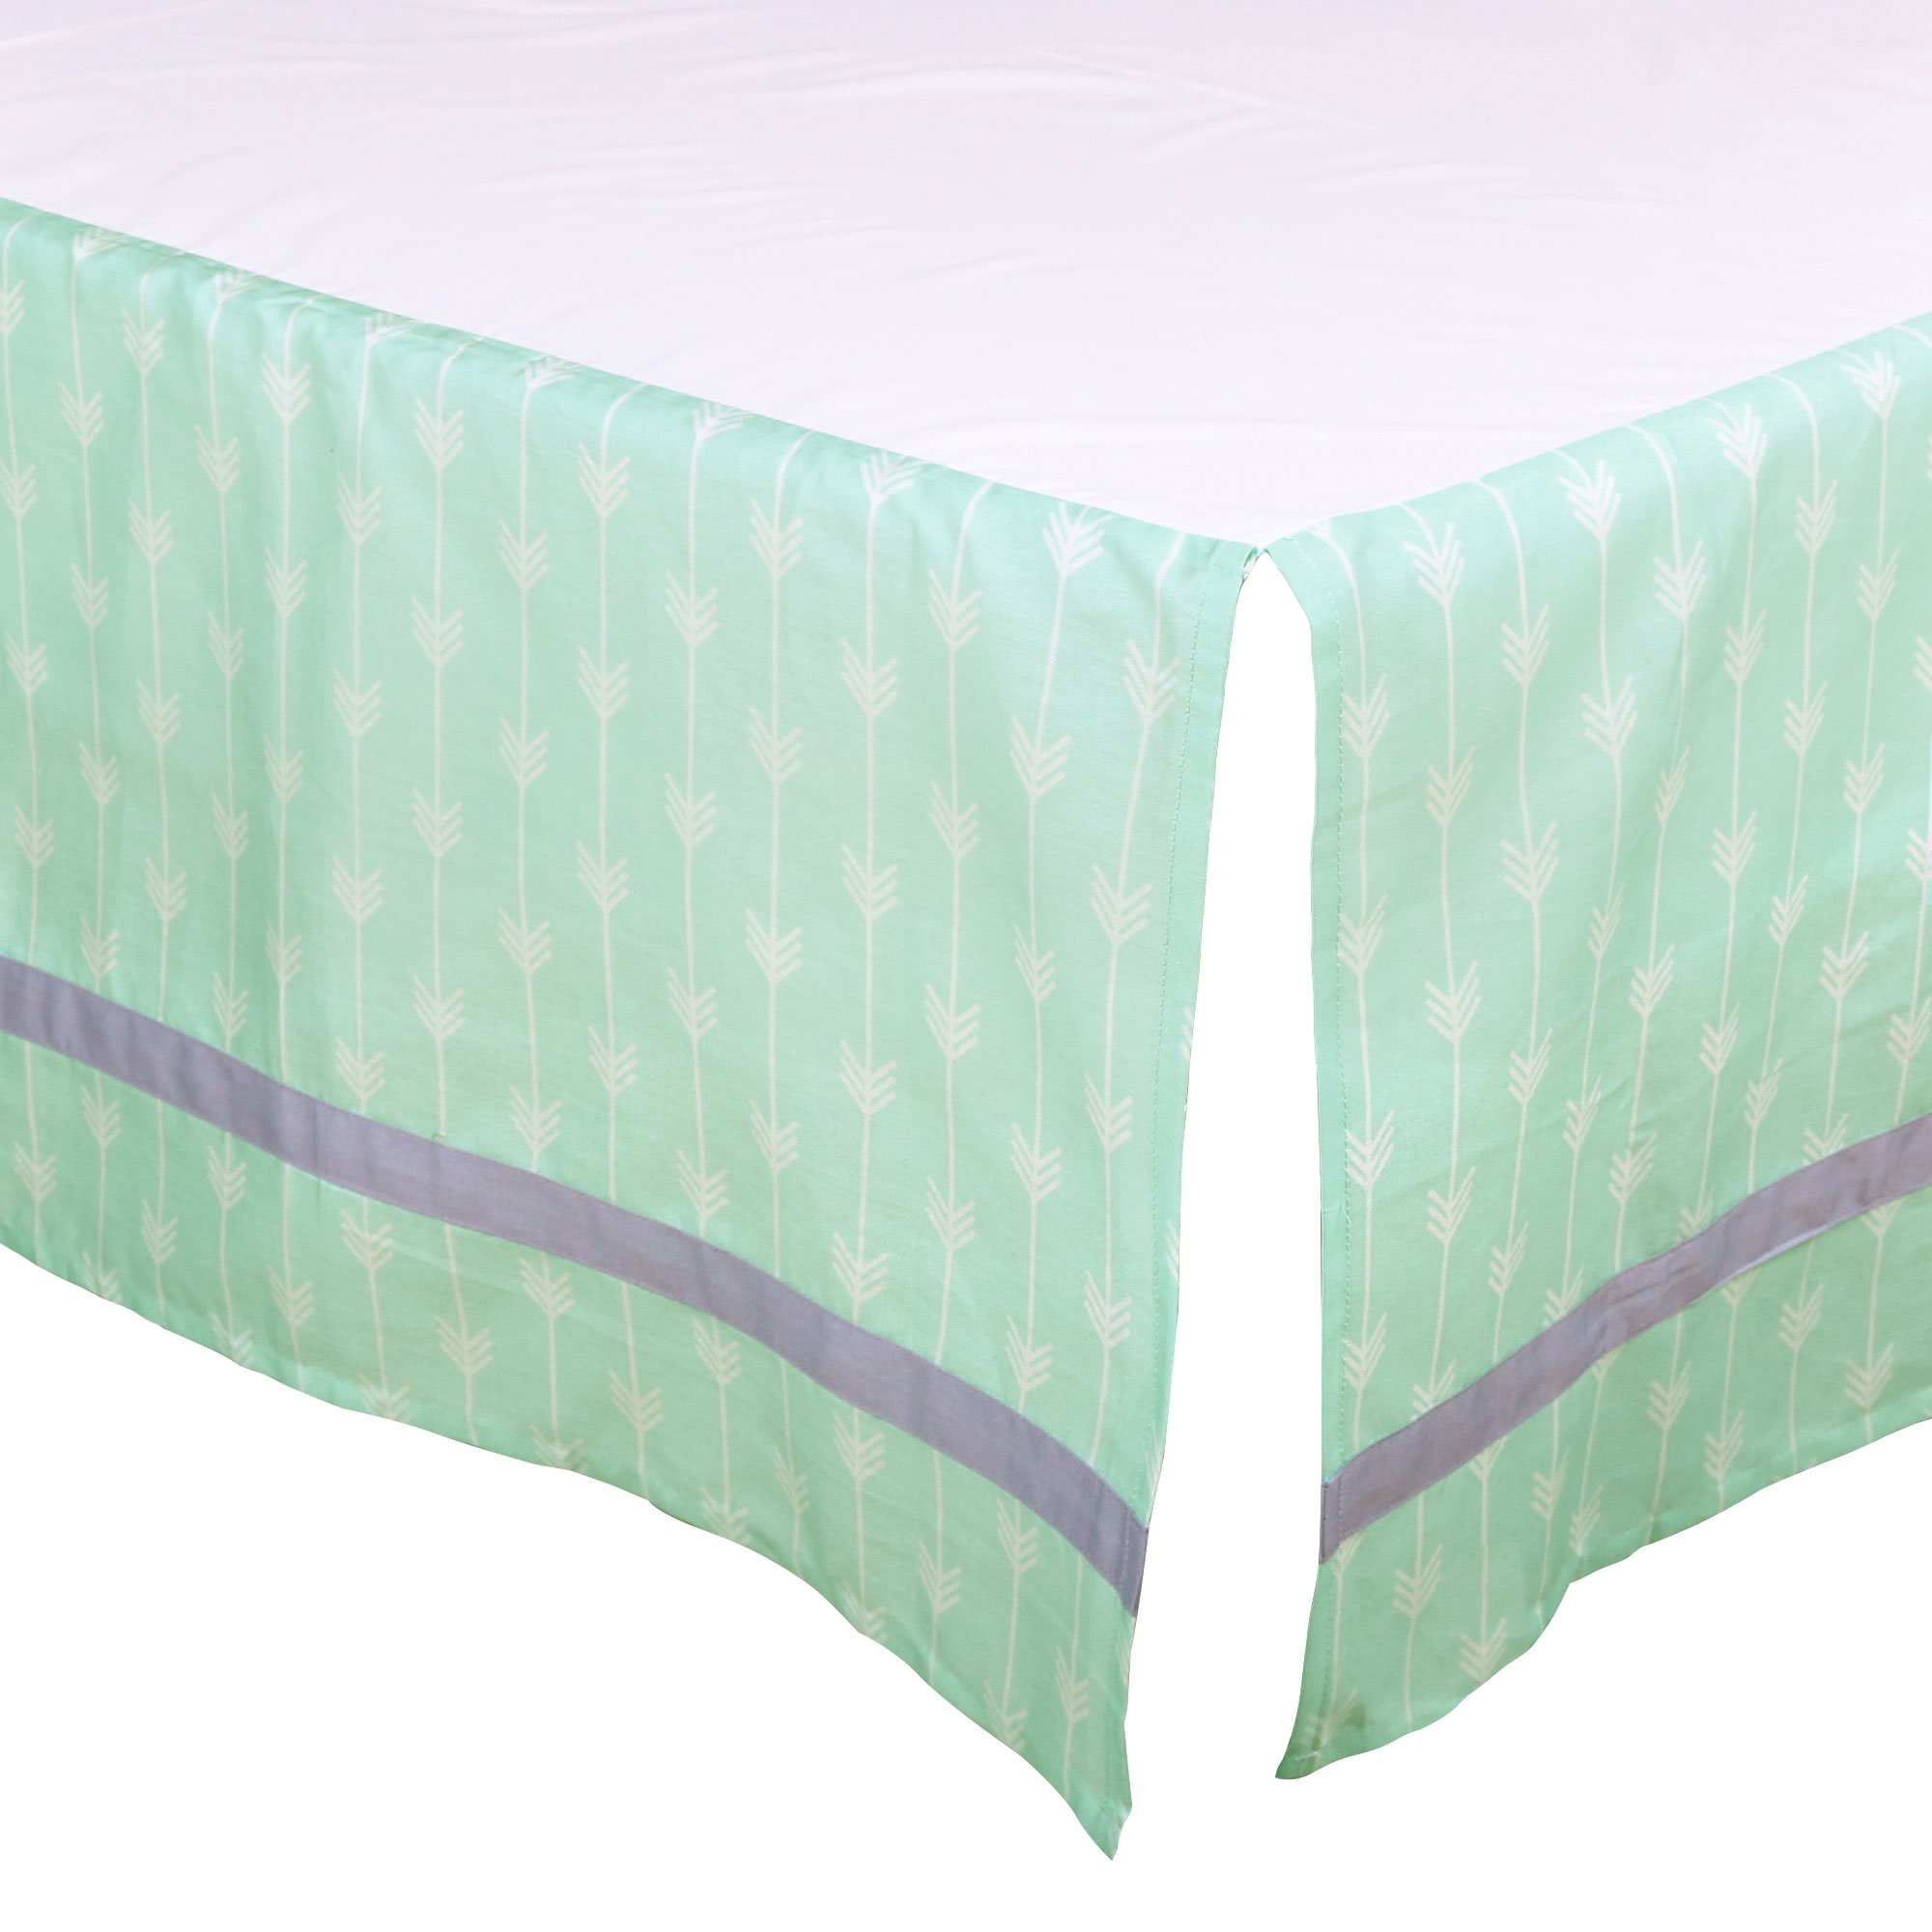 The Peanut Shell Tailored Crib Skirt - Mint Green Arrow Chevron Geometric Print with Purple Trim - 100% Cotton Sateen 14 Inch Drop, Standard Crib